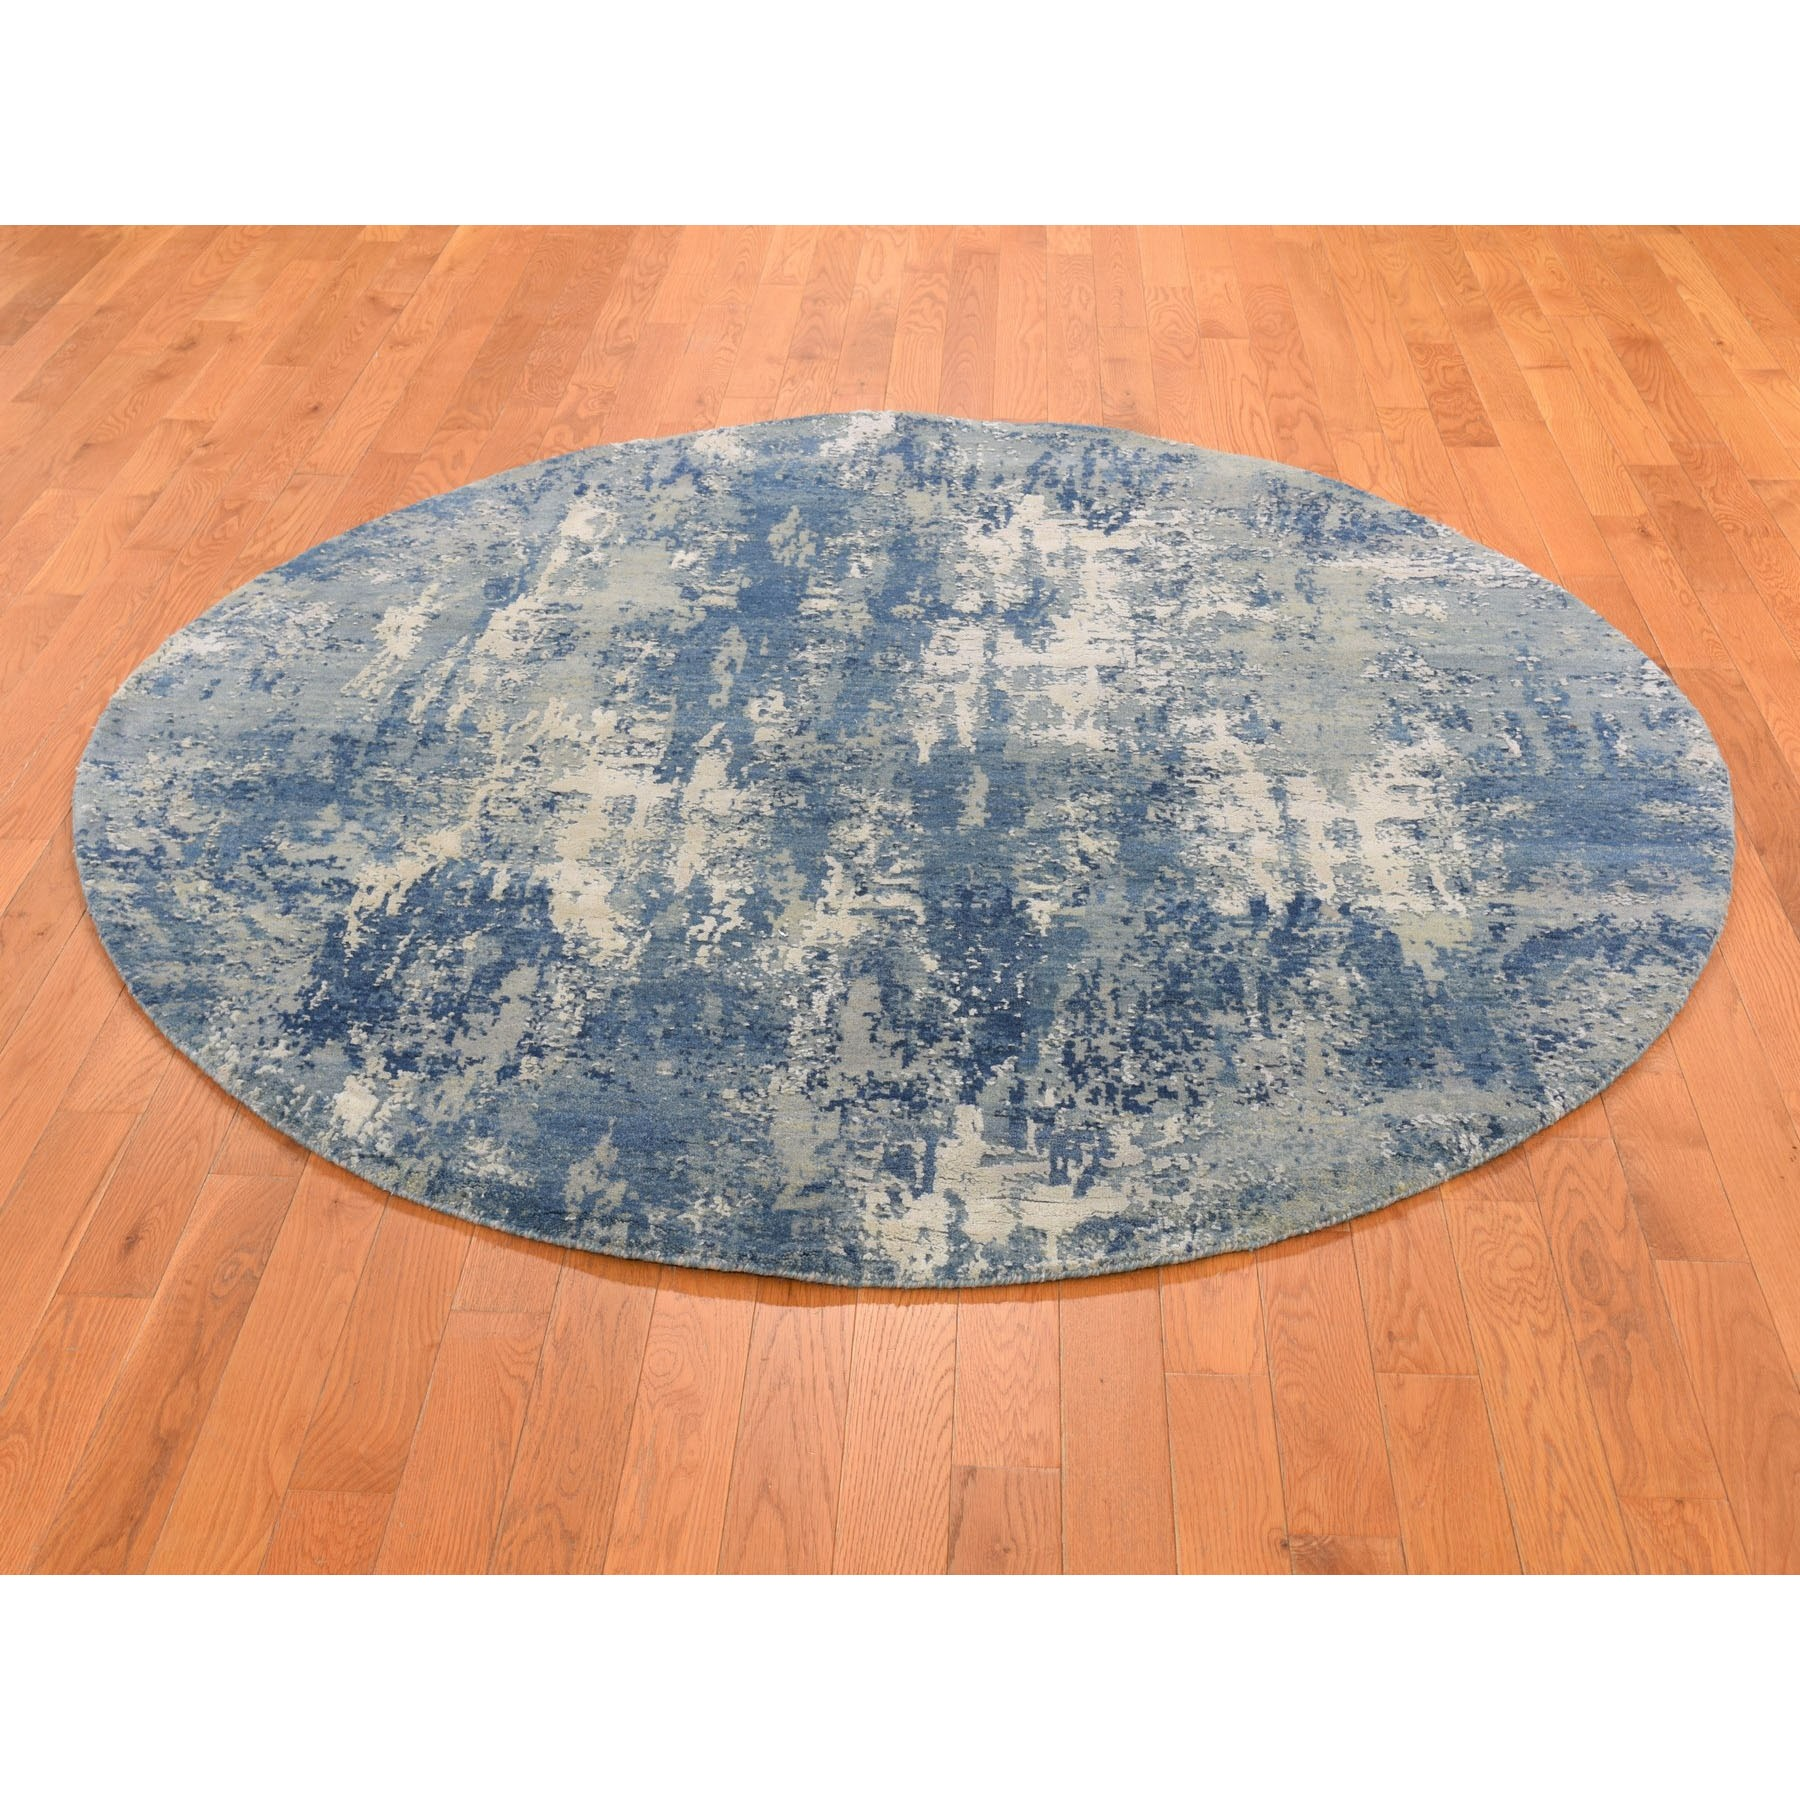 6-2 x6-2  Blue Abstract Design Wool and Pure Silk Hand Knotted Round Oriental Rug